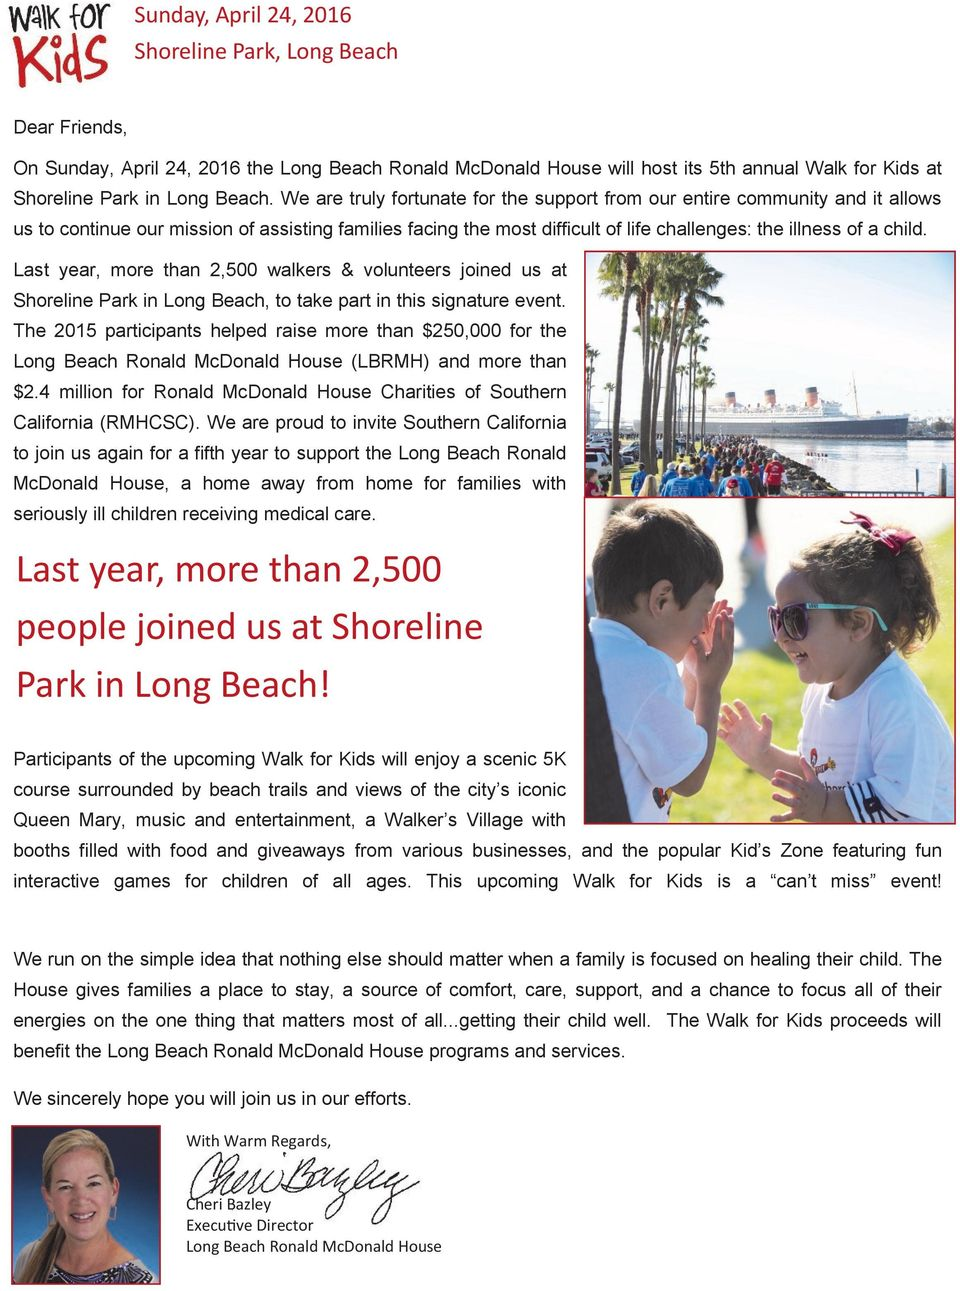 Last year, more than 2,500 walkers & volunteers joined us at Shoreline Park in Long Beach, to take part in this signature event.